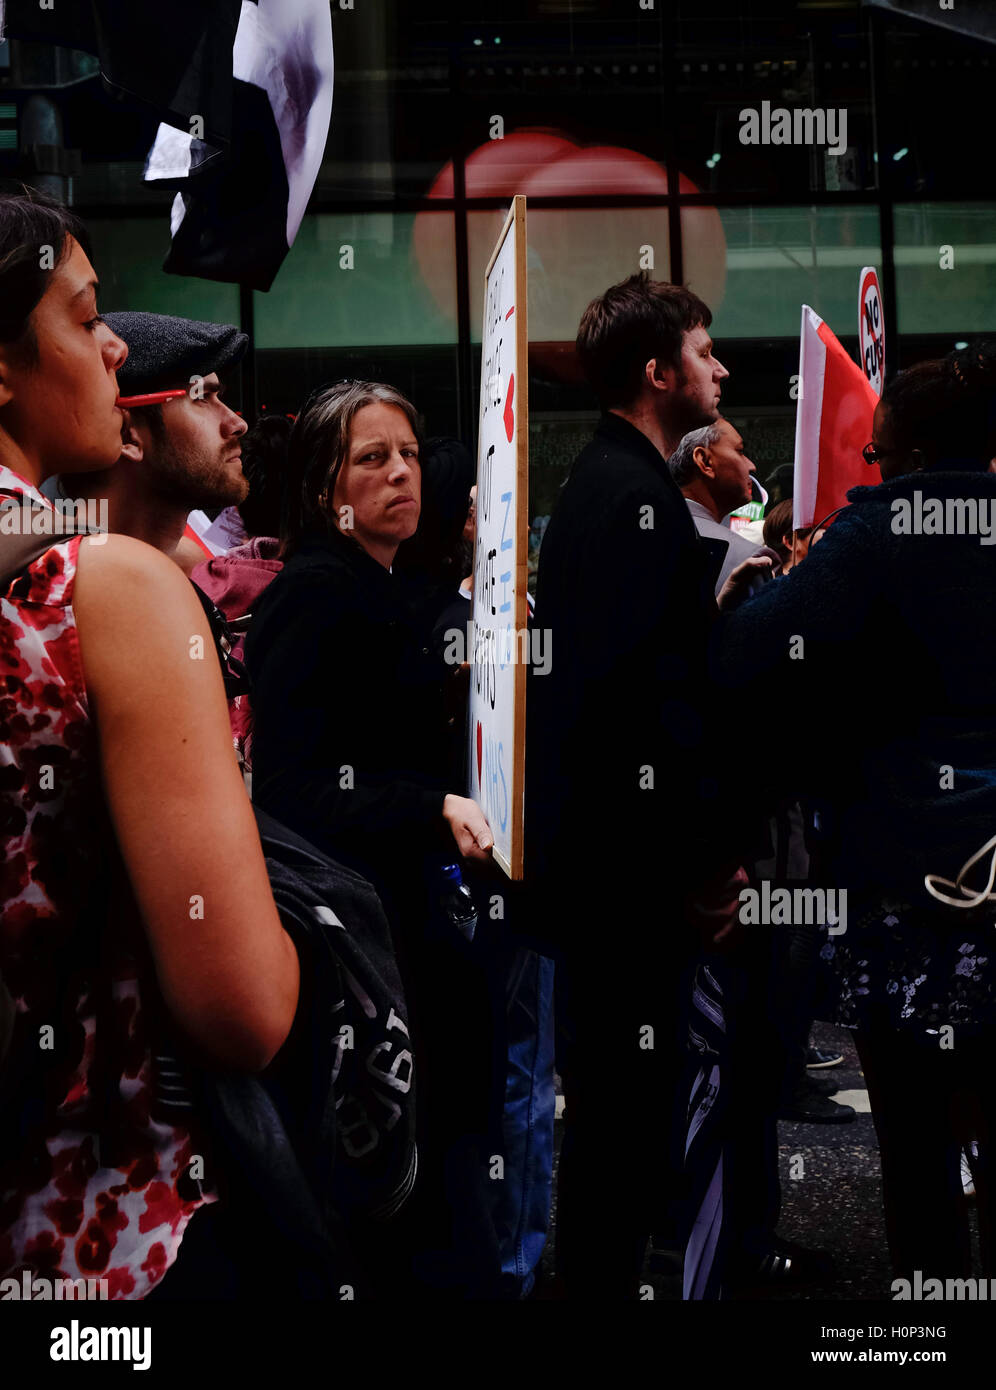 sullen, female protestor at anti-austerity march in London, stares at the camera - Stock Image